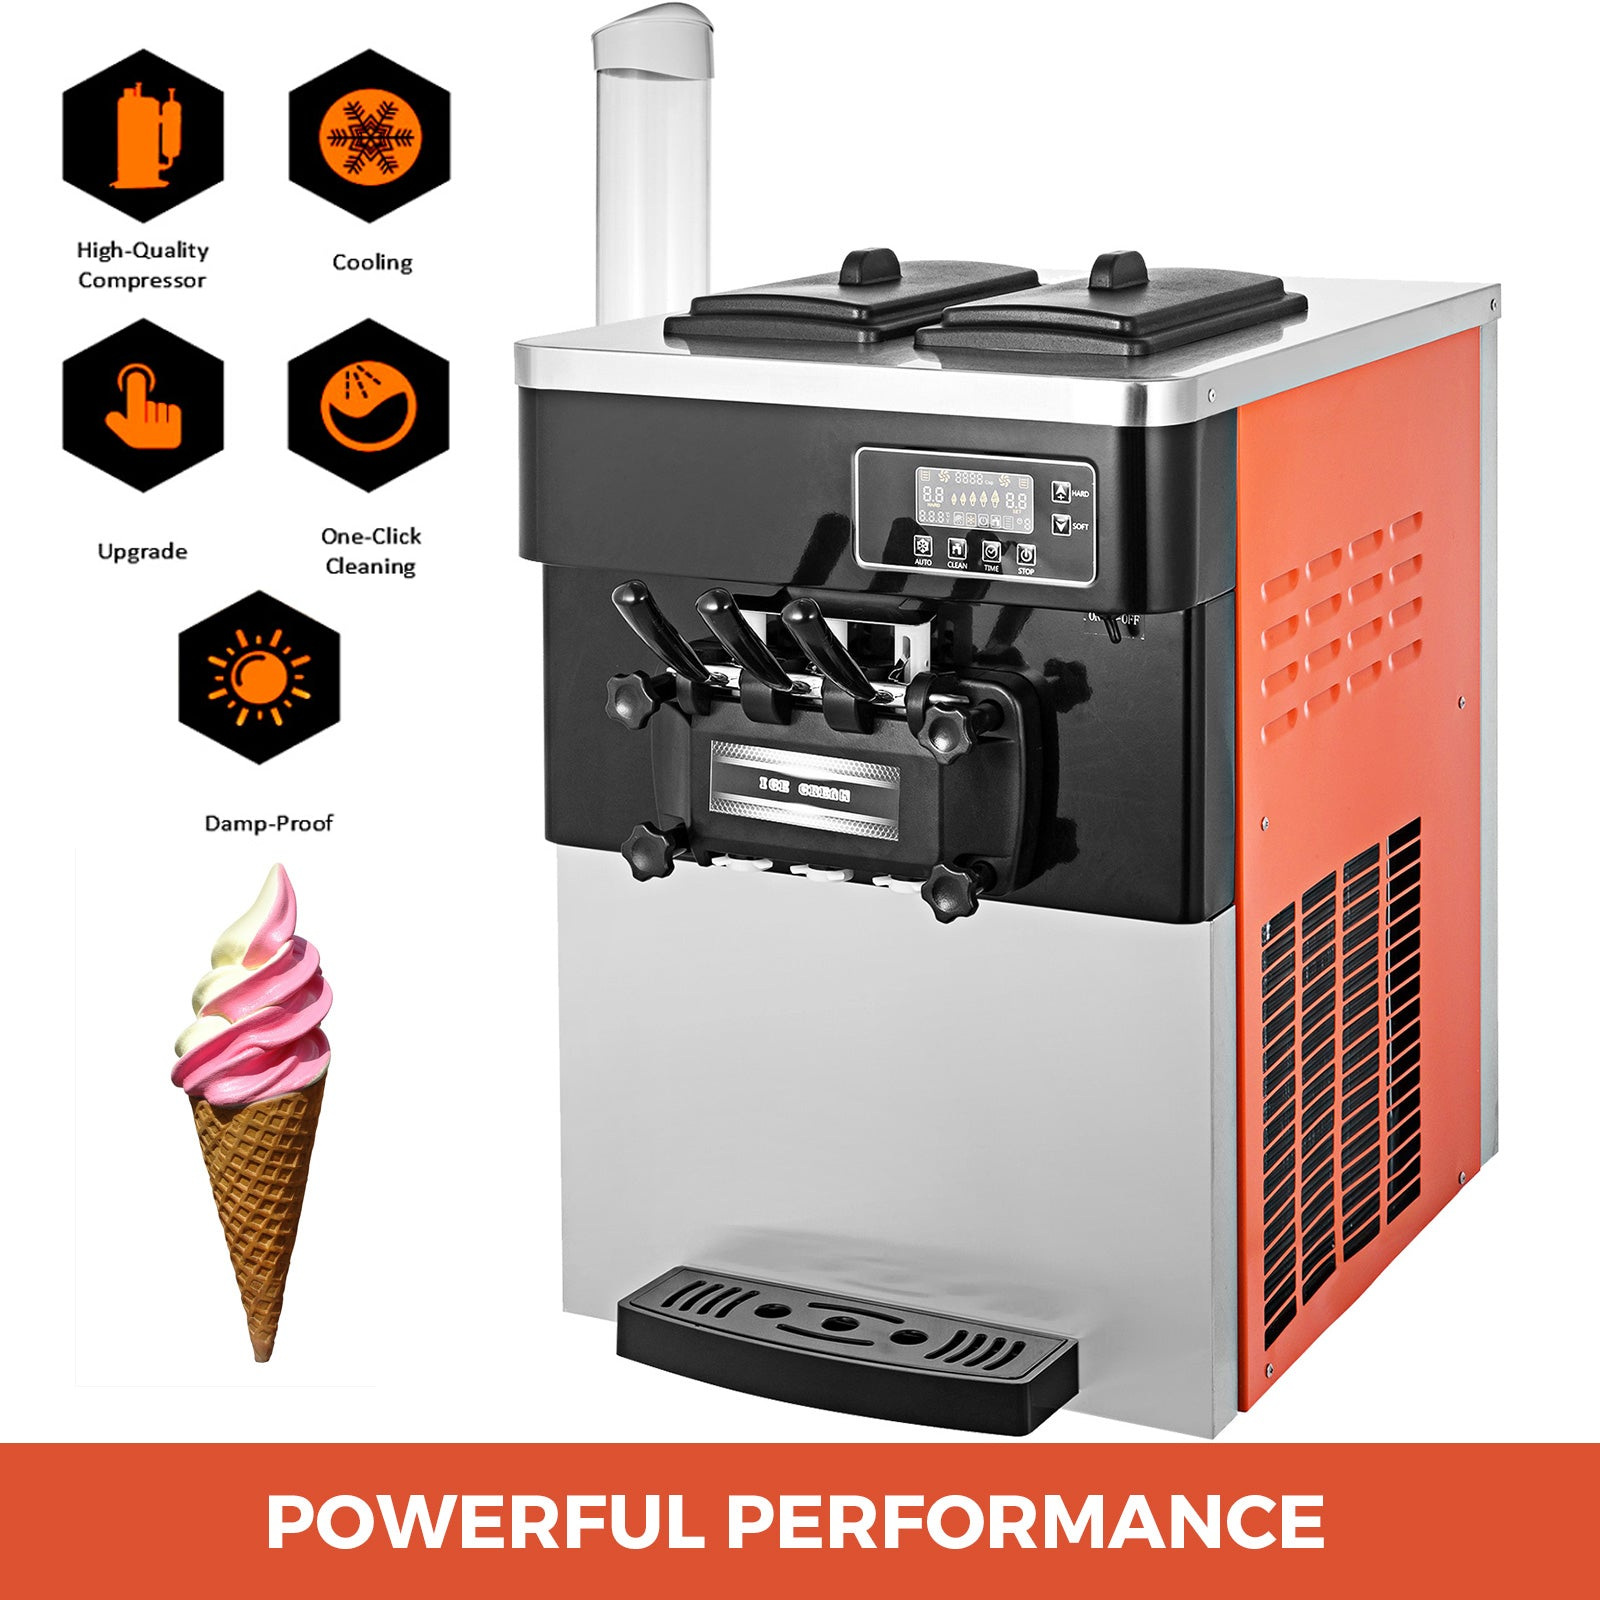 20-28l/h Commercial Soft Ice Cream Machine Detachable Tray Countertop Snack Shop